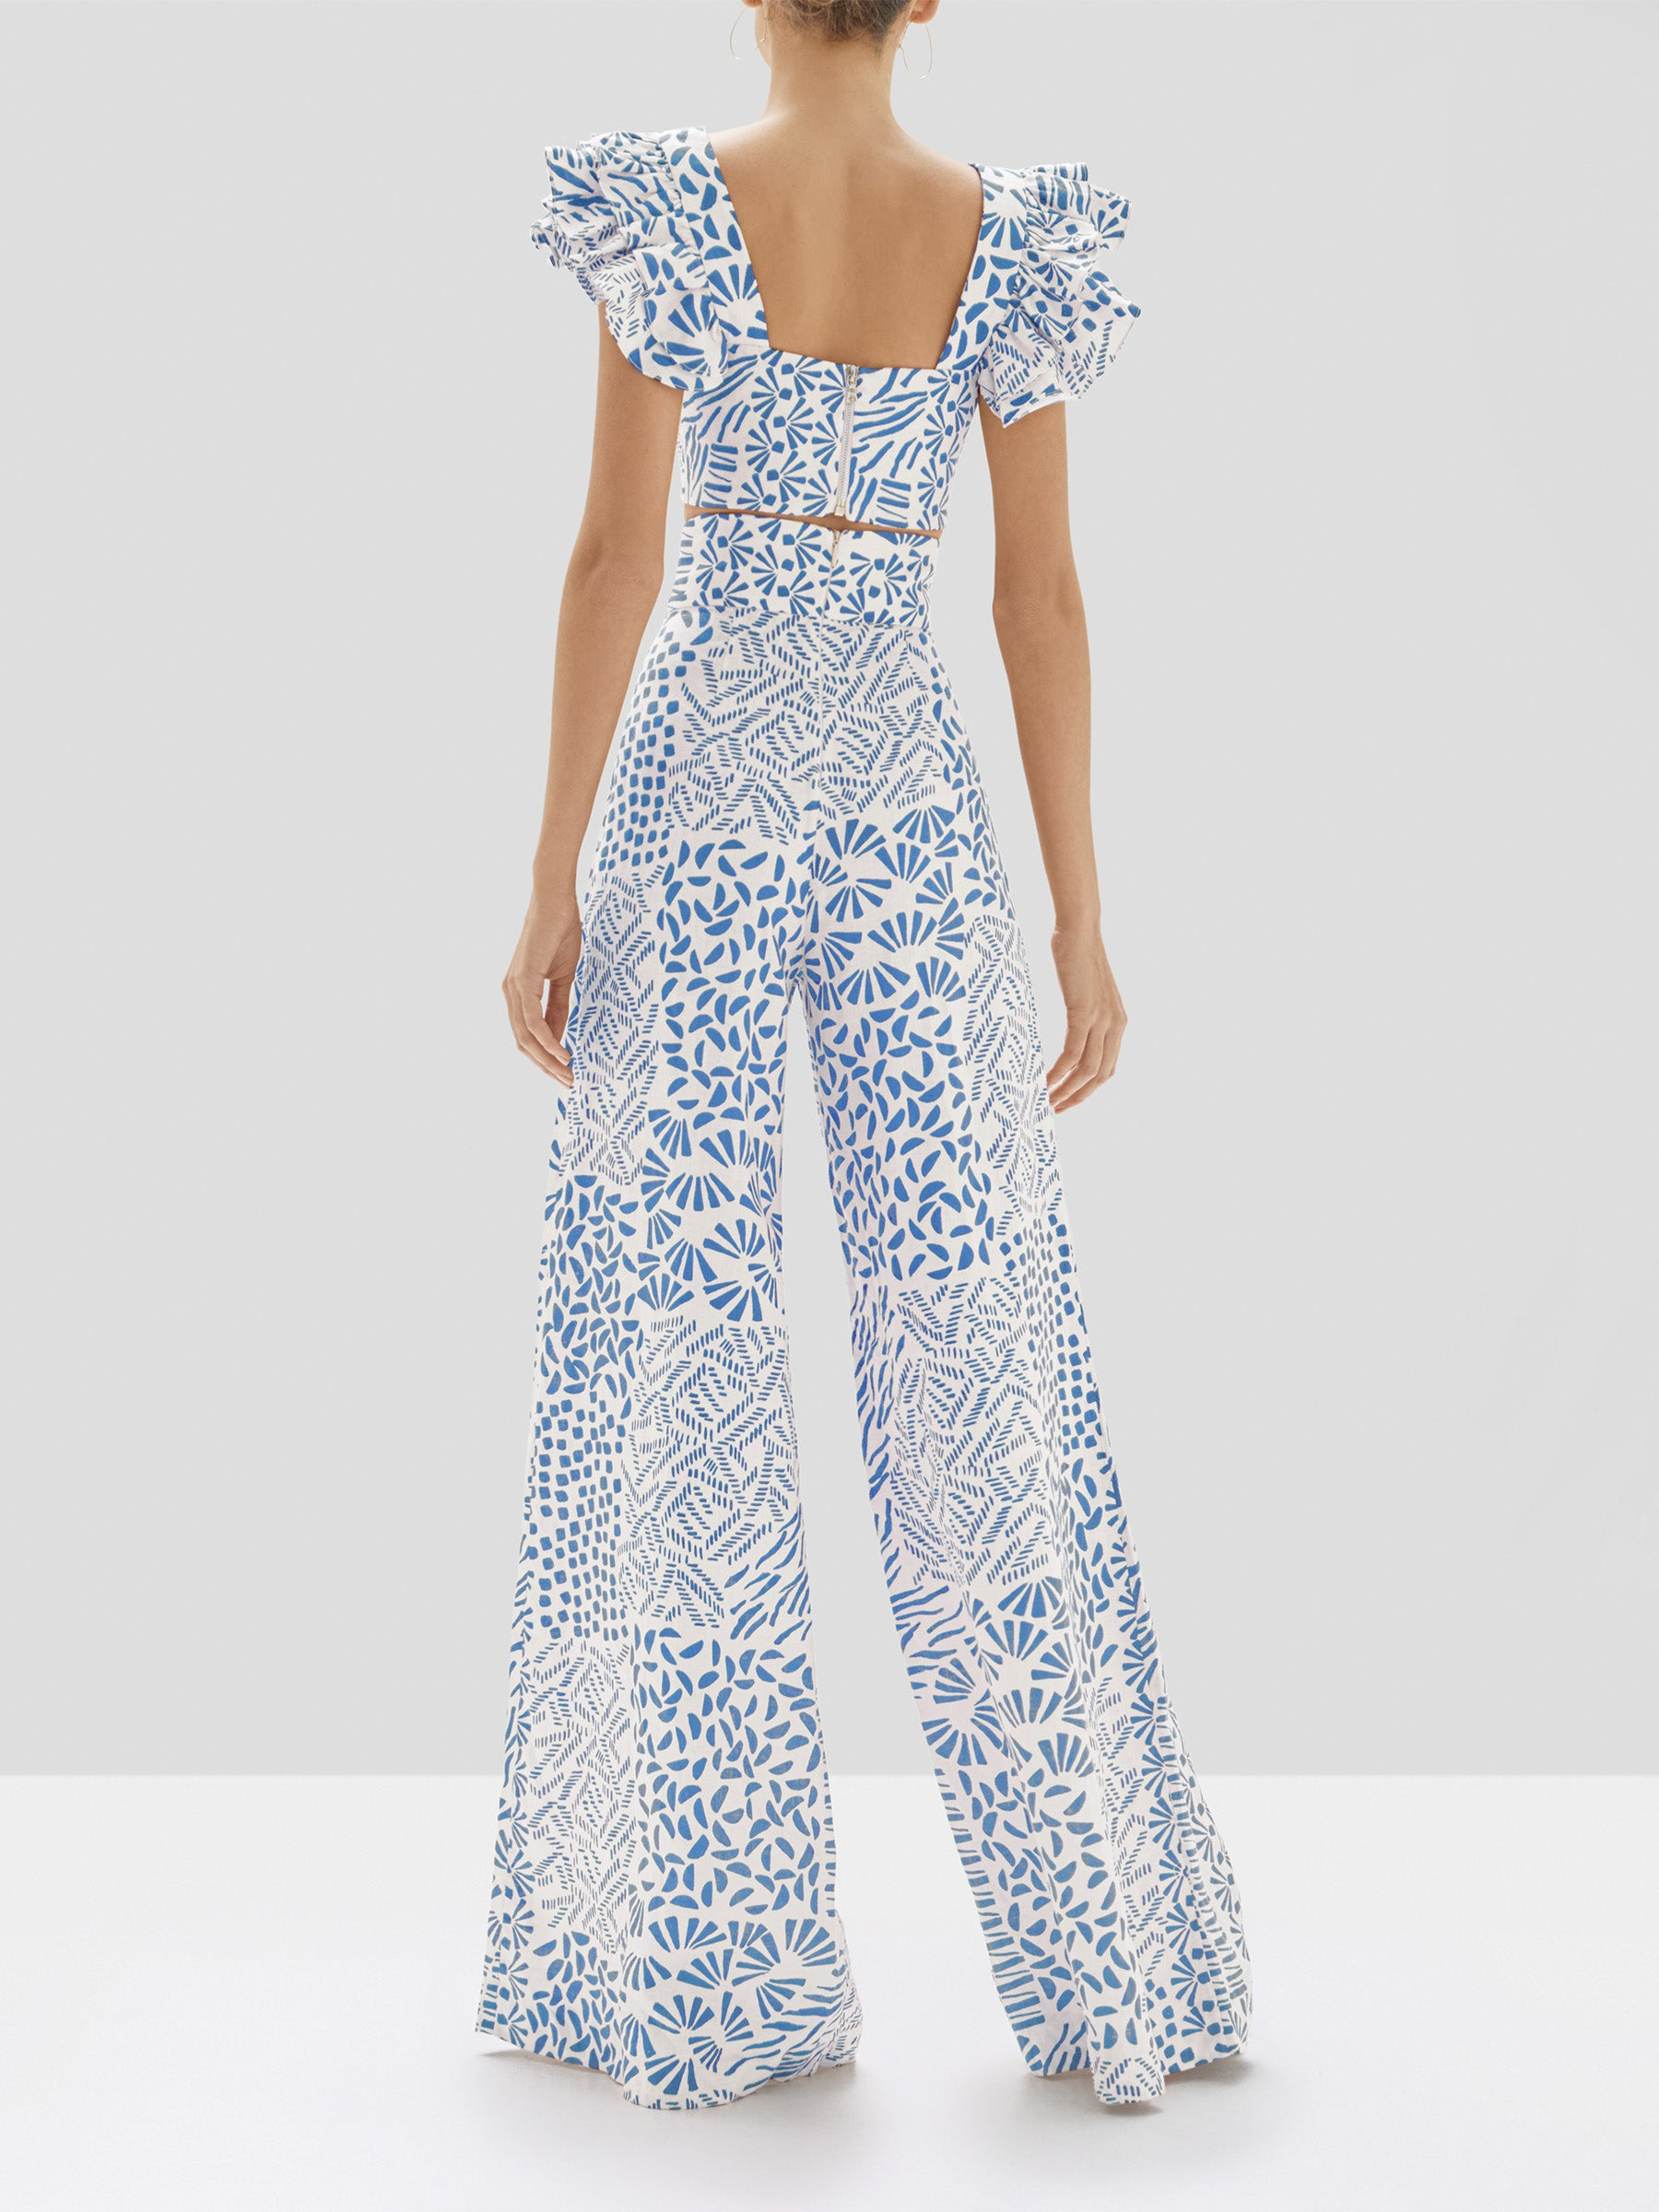 Alexis Verna Top and Neassa Pant in Blue Abstract from our Pre-Spring 2020 Ready To Wear Collection - Rear View